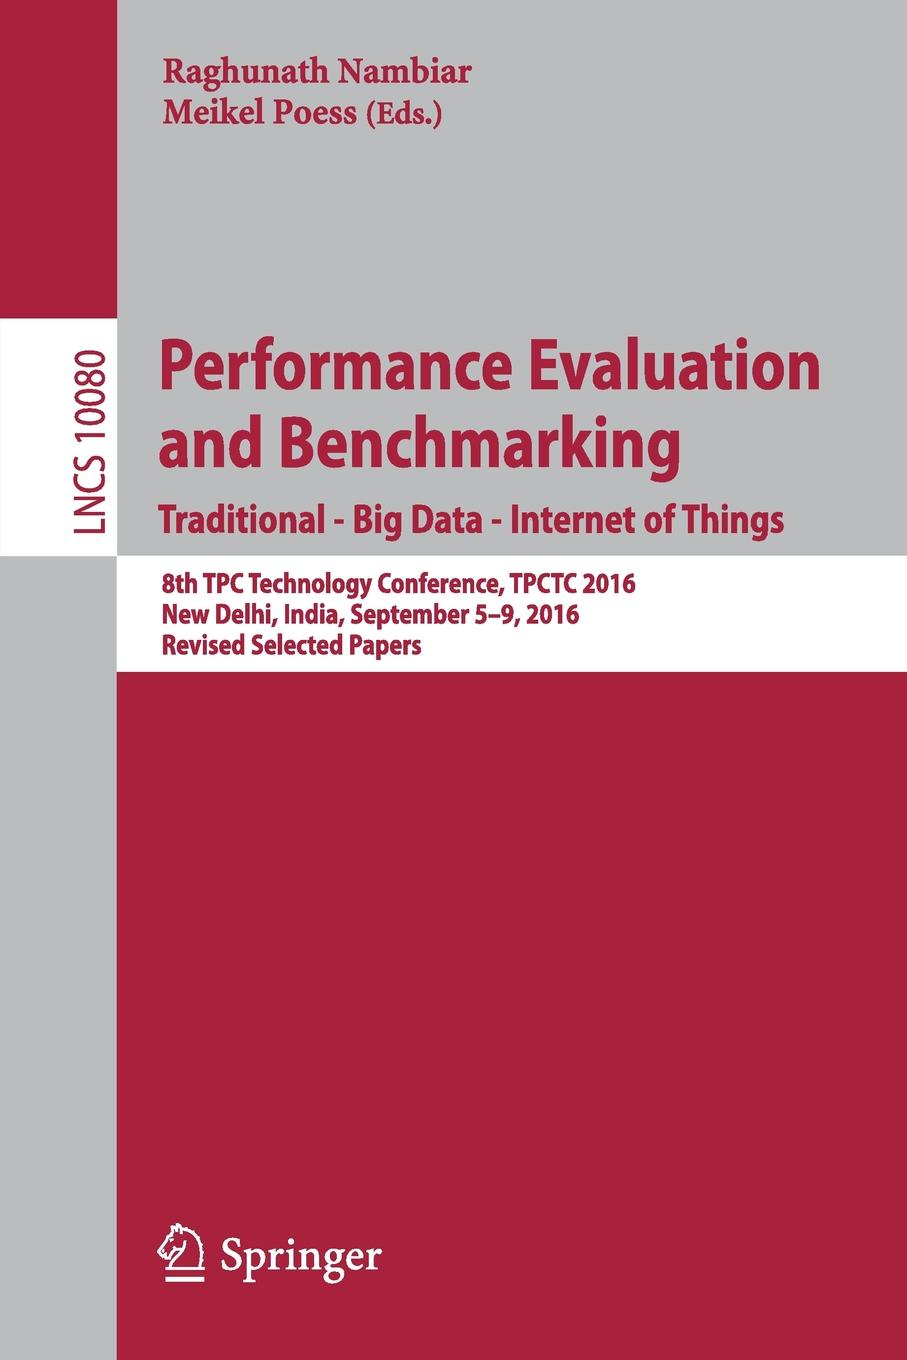 Performance Evaluation and Benchmarking. Traditional - Big Data - Internet of Things. 8th TPC Technology Conference, TPCTC 2016, New Delhi, India, September 5-9, 2016, Revised Selected Papers hwaiyu geng internet of things and data analytics handbook